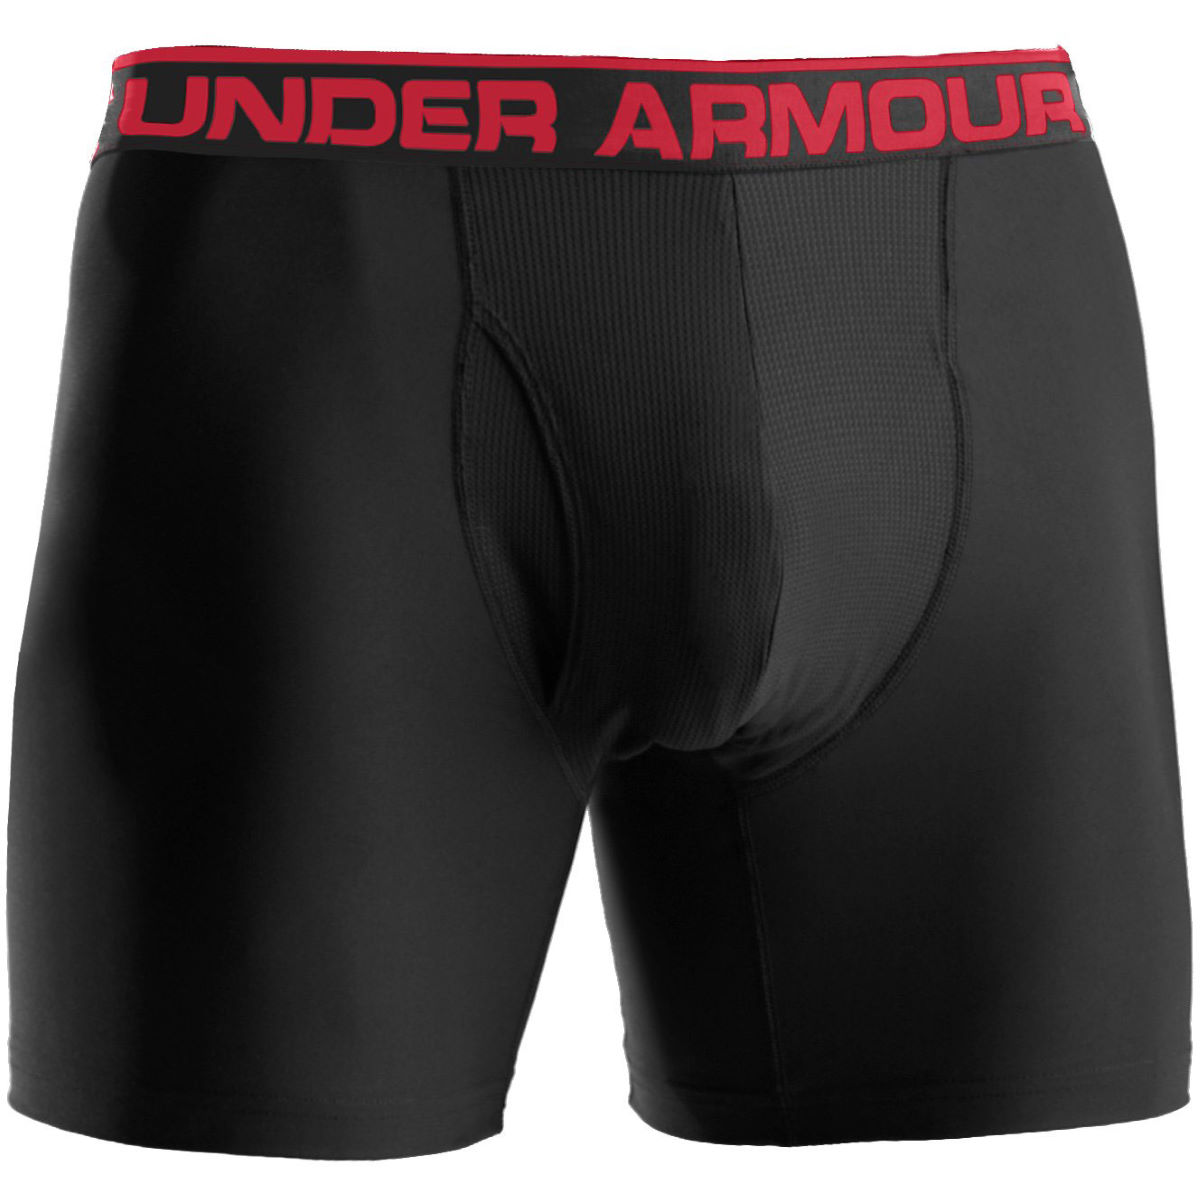 Bóxer Under Armour The Original Boxer Jock (6)  - Ropa interior y sujetadores